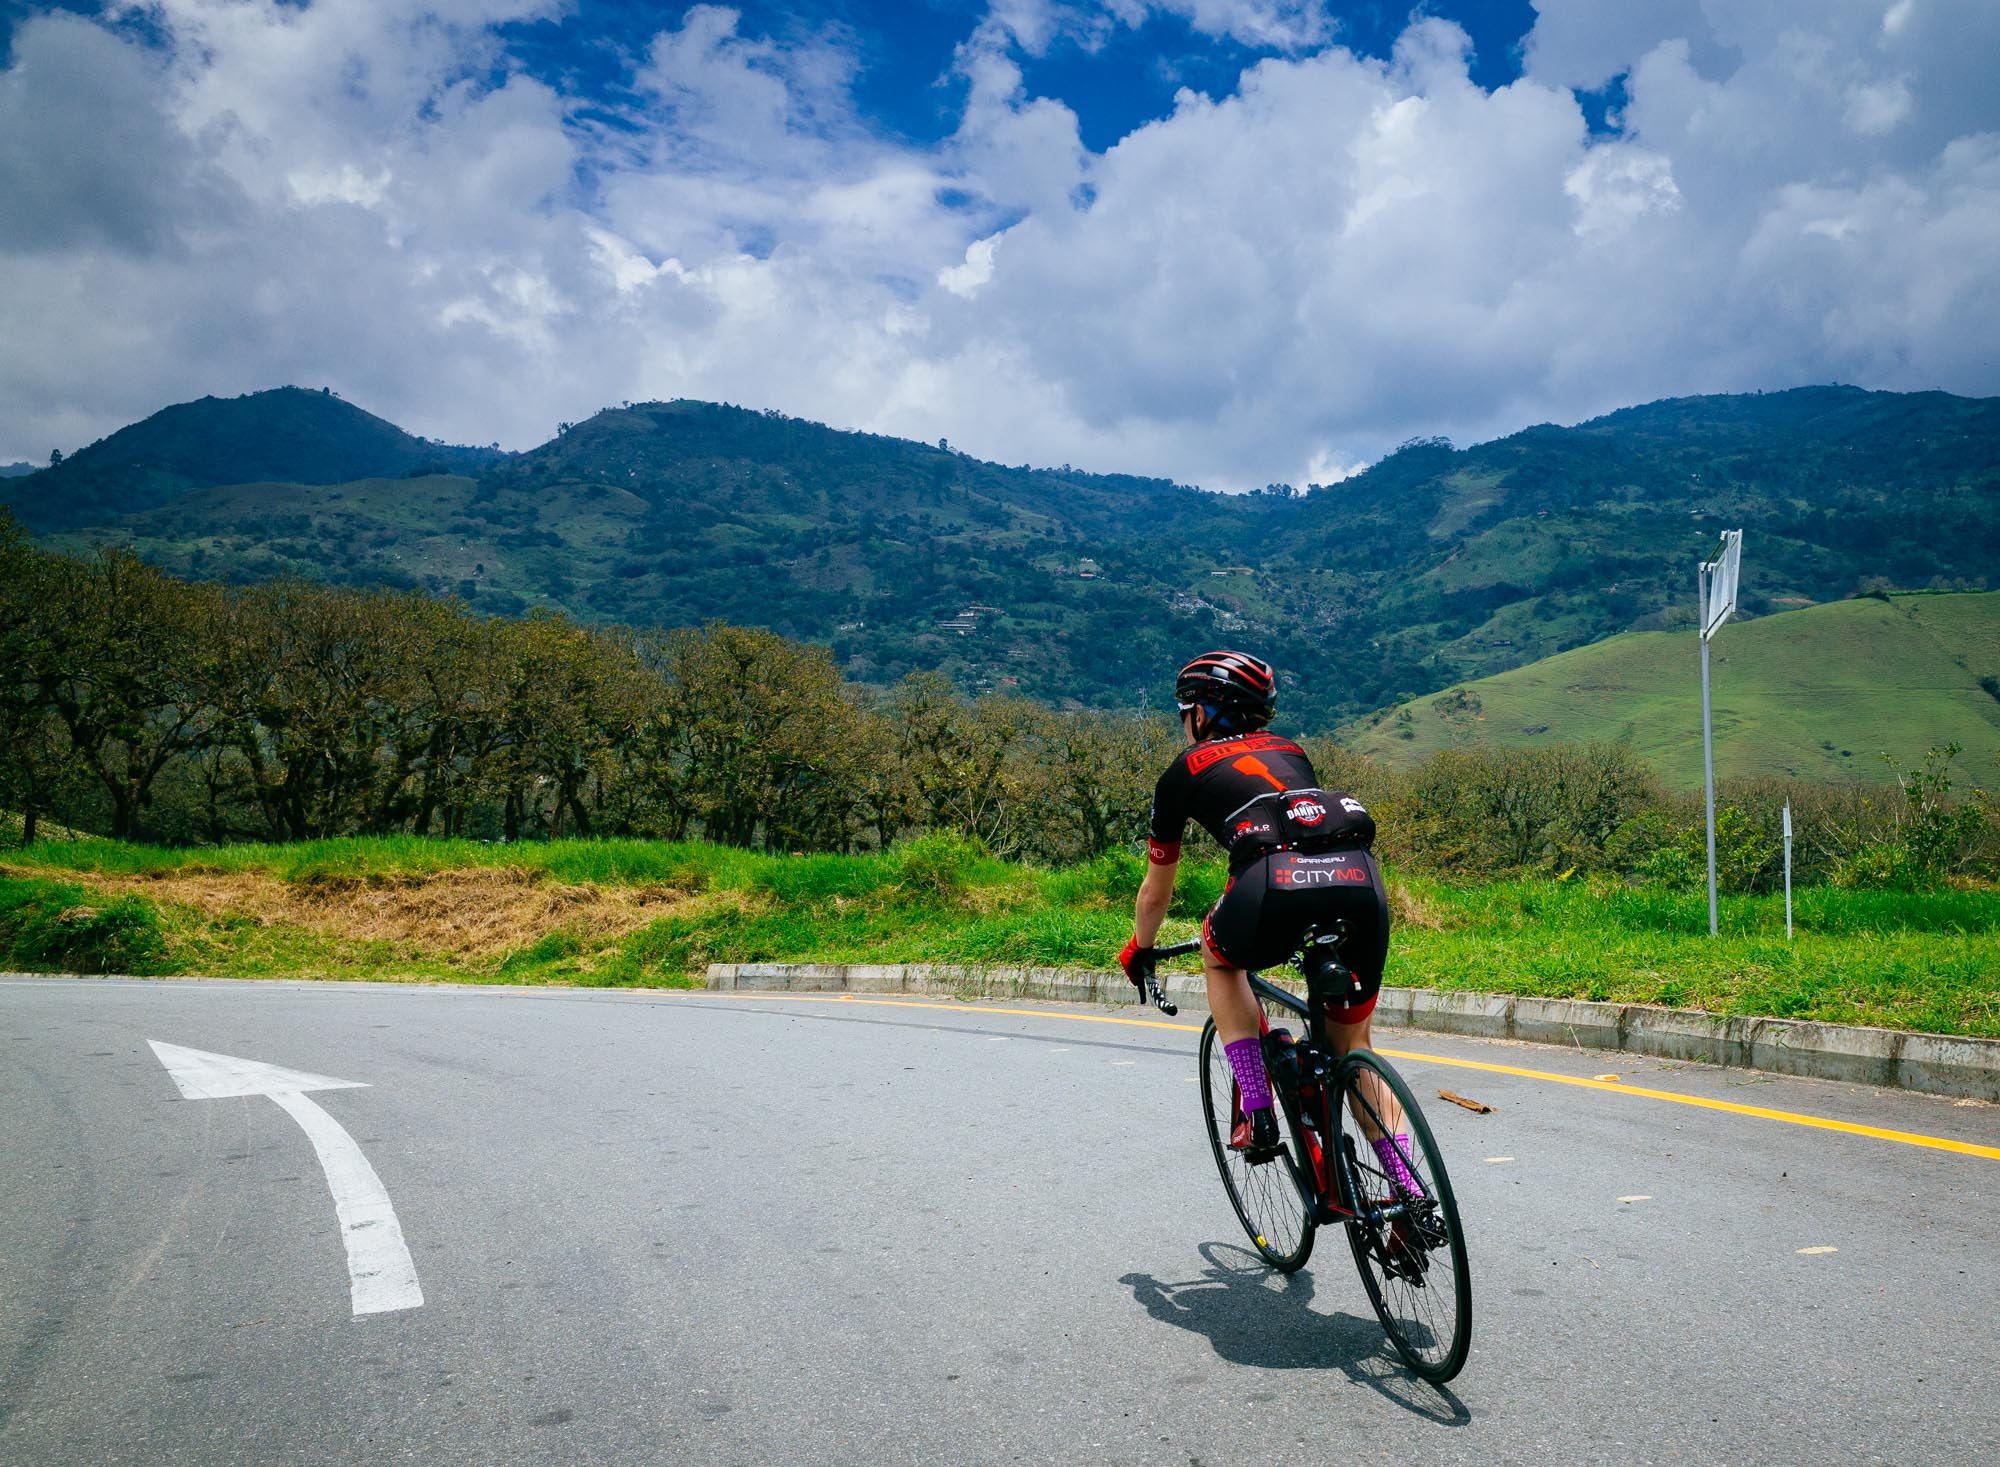 to-be-determined-photo-rhetoric-cycling-in-colombia-1019.jpg